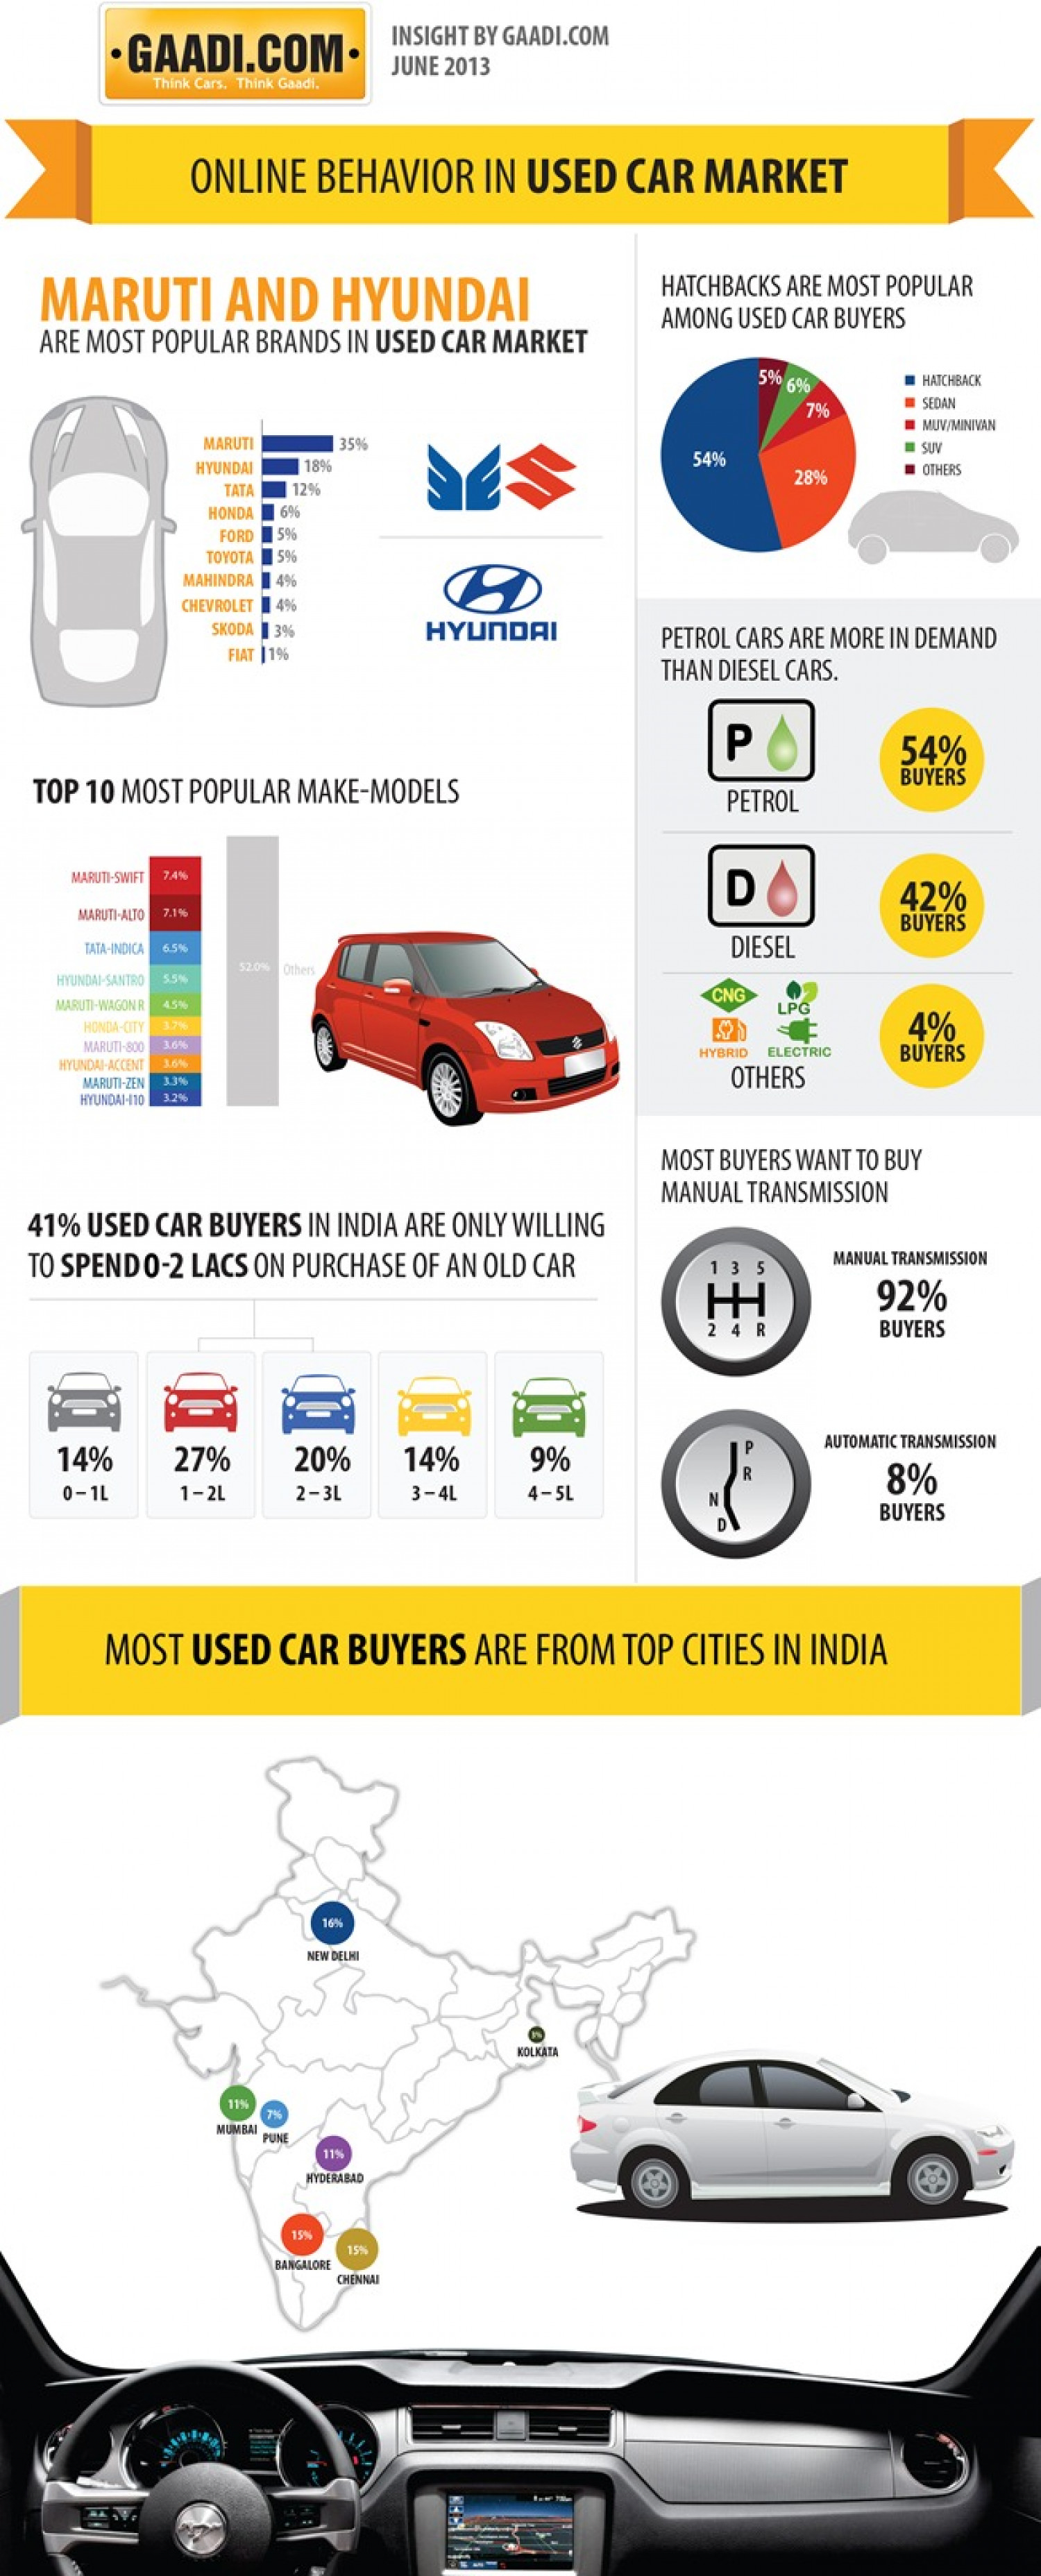 Online Behavior in Used Car Market Infographic